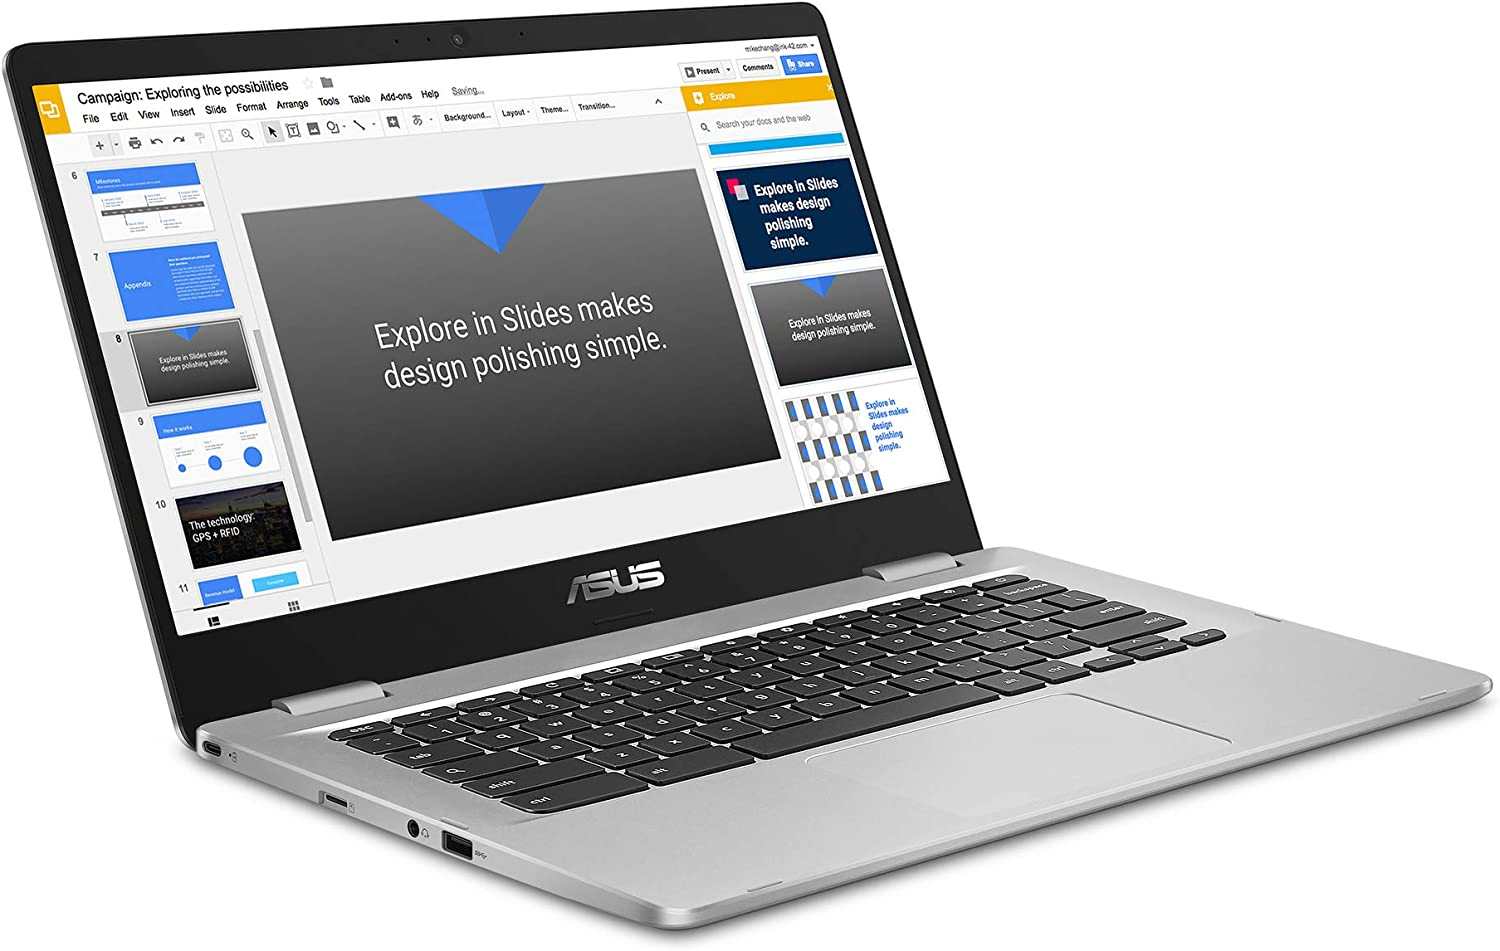 2019 ASUS Chromebook 14 FHD 1080P Display with Intel Dual Core Celeron Processor N3350, 4GB RAM, 32GB eMMc SSD Storage, Webcam, 802.11AC WiFi, Bluetooth, USB3.1 Type-C, Google Chrome OS-Silver